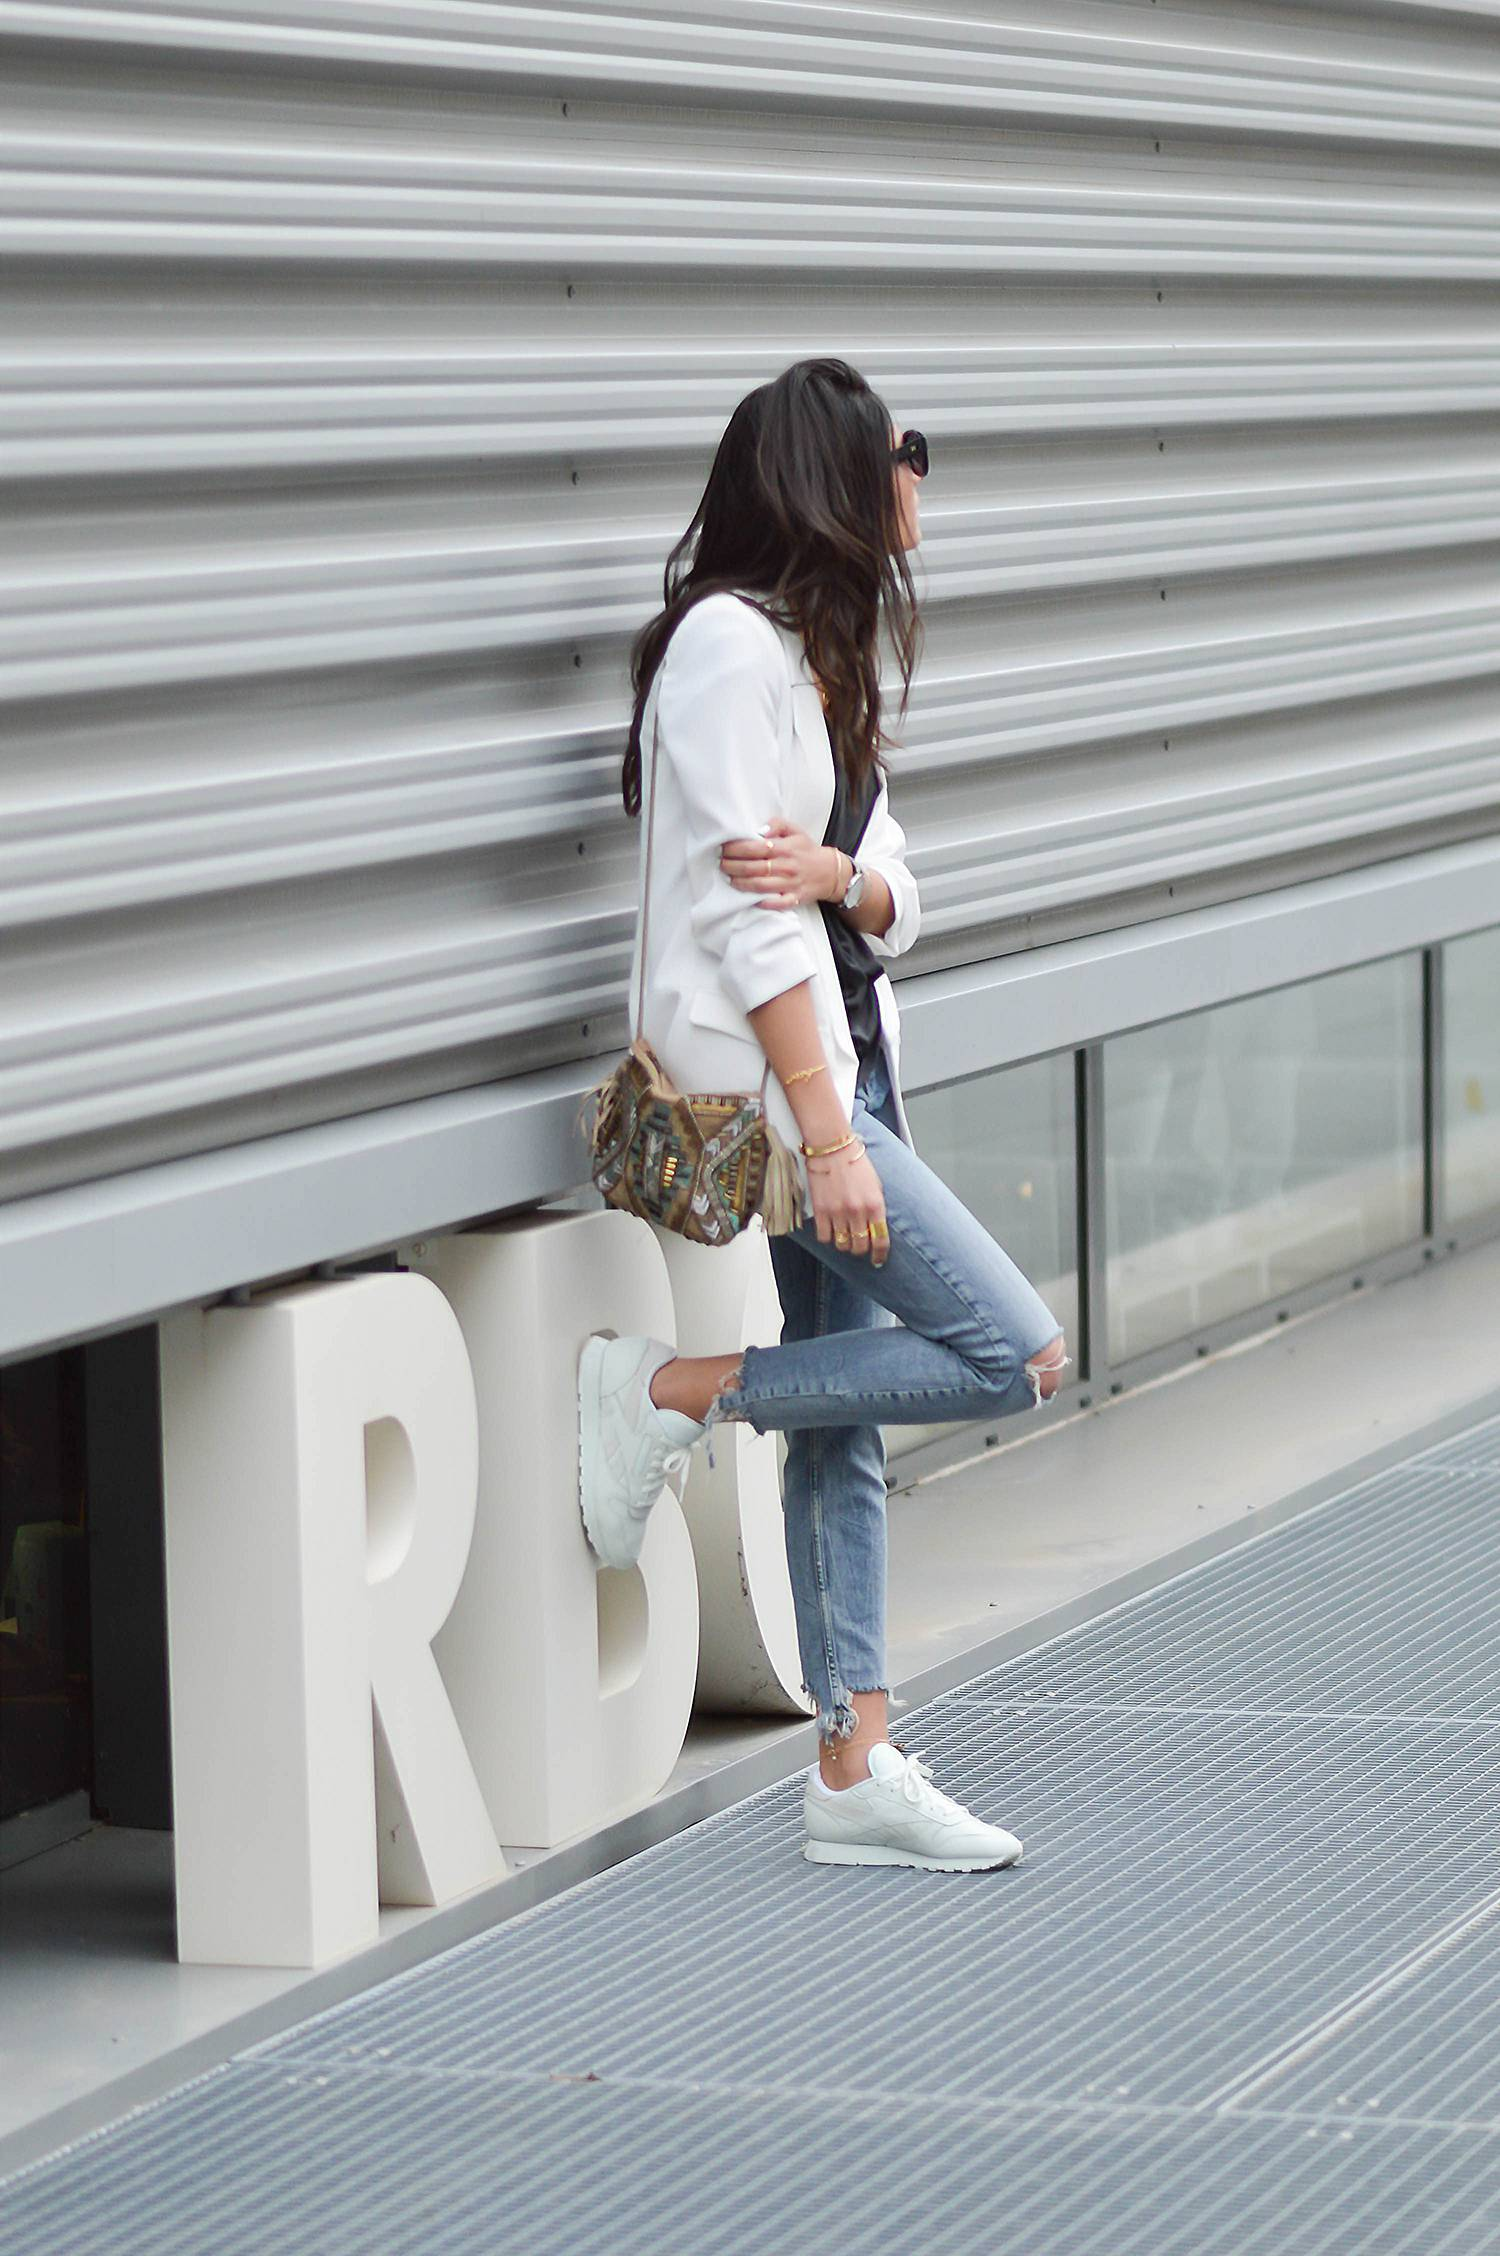 Pairing a blazer with distressed denim jeans is a great idea if you're looking for an outfit which is both casual and somewhat elegant. Federica L. has chosen to wear a white blazer, creating a smart style which we love! Blazer: Zara, Jeans: Bershka.